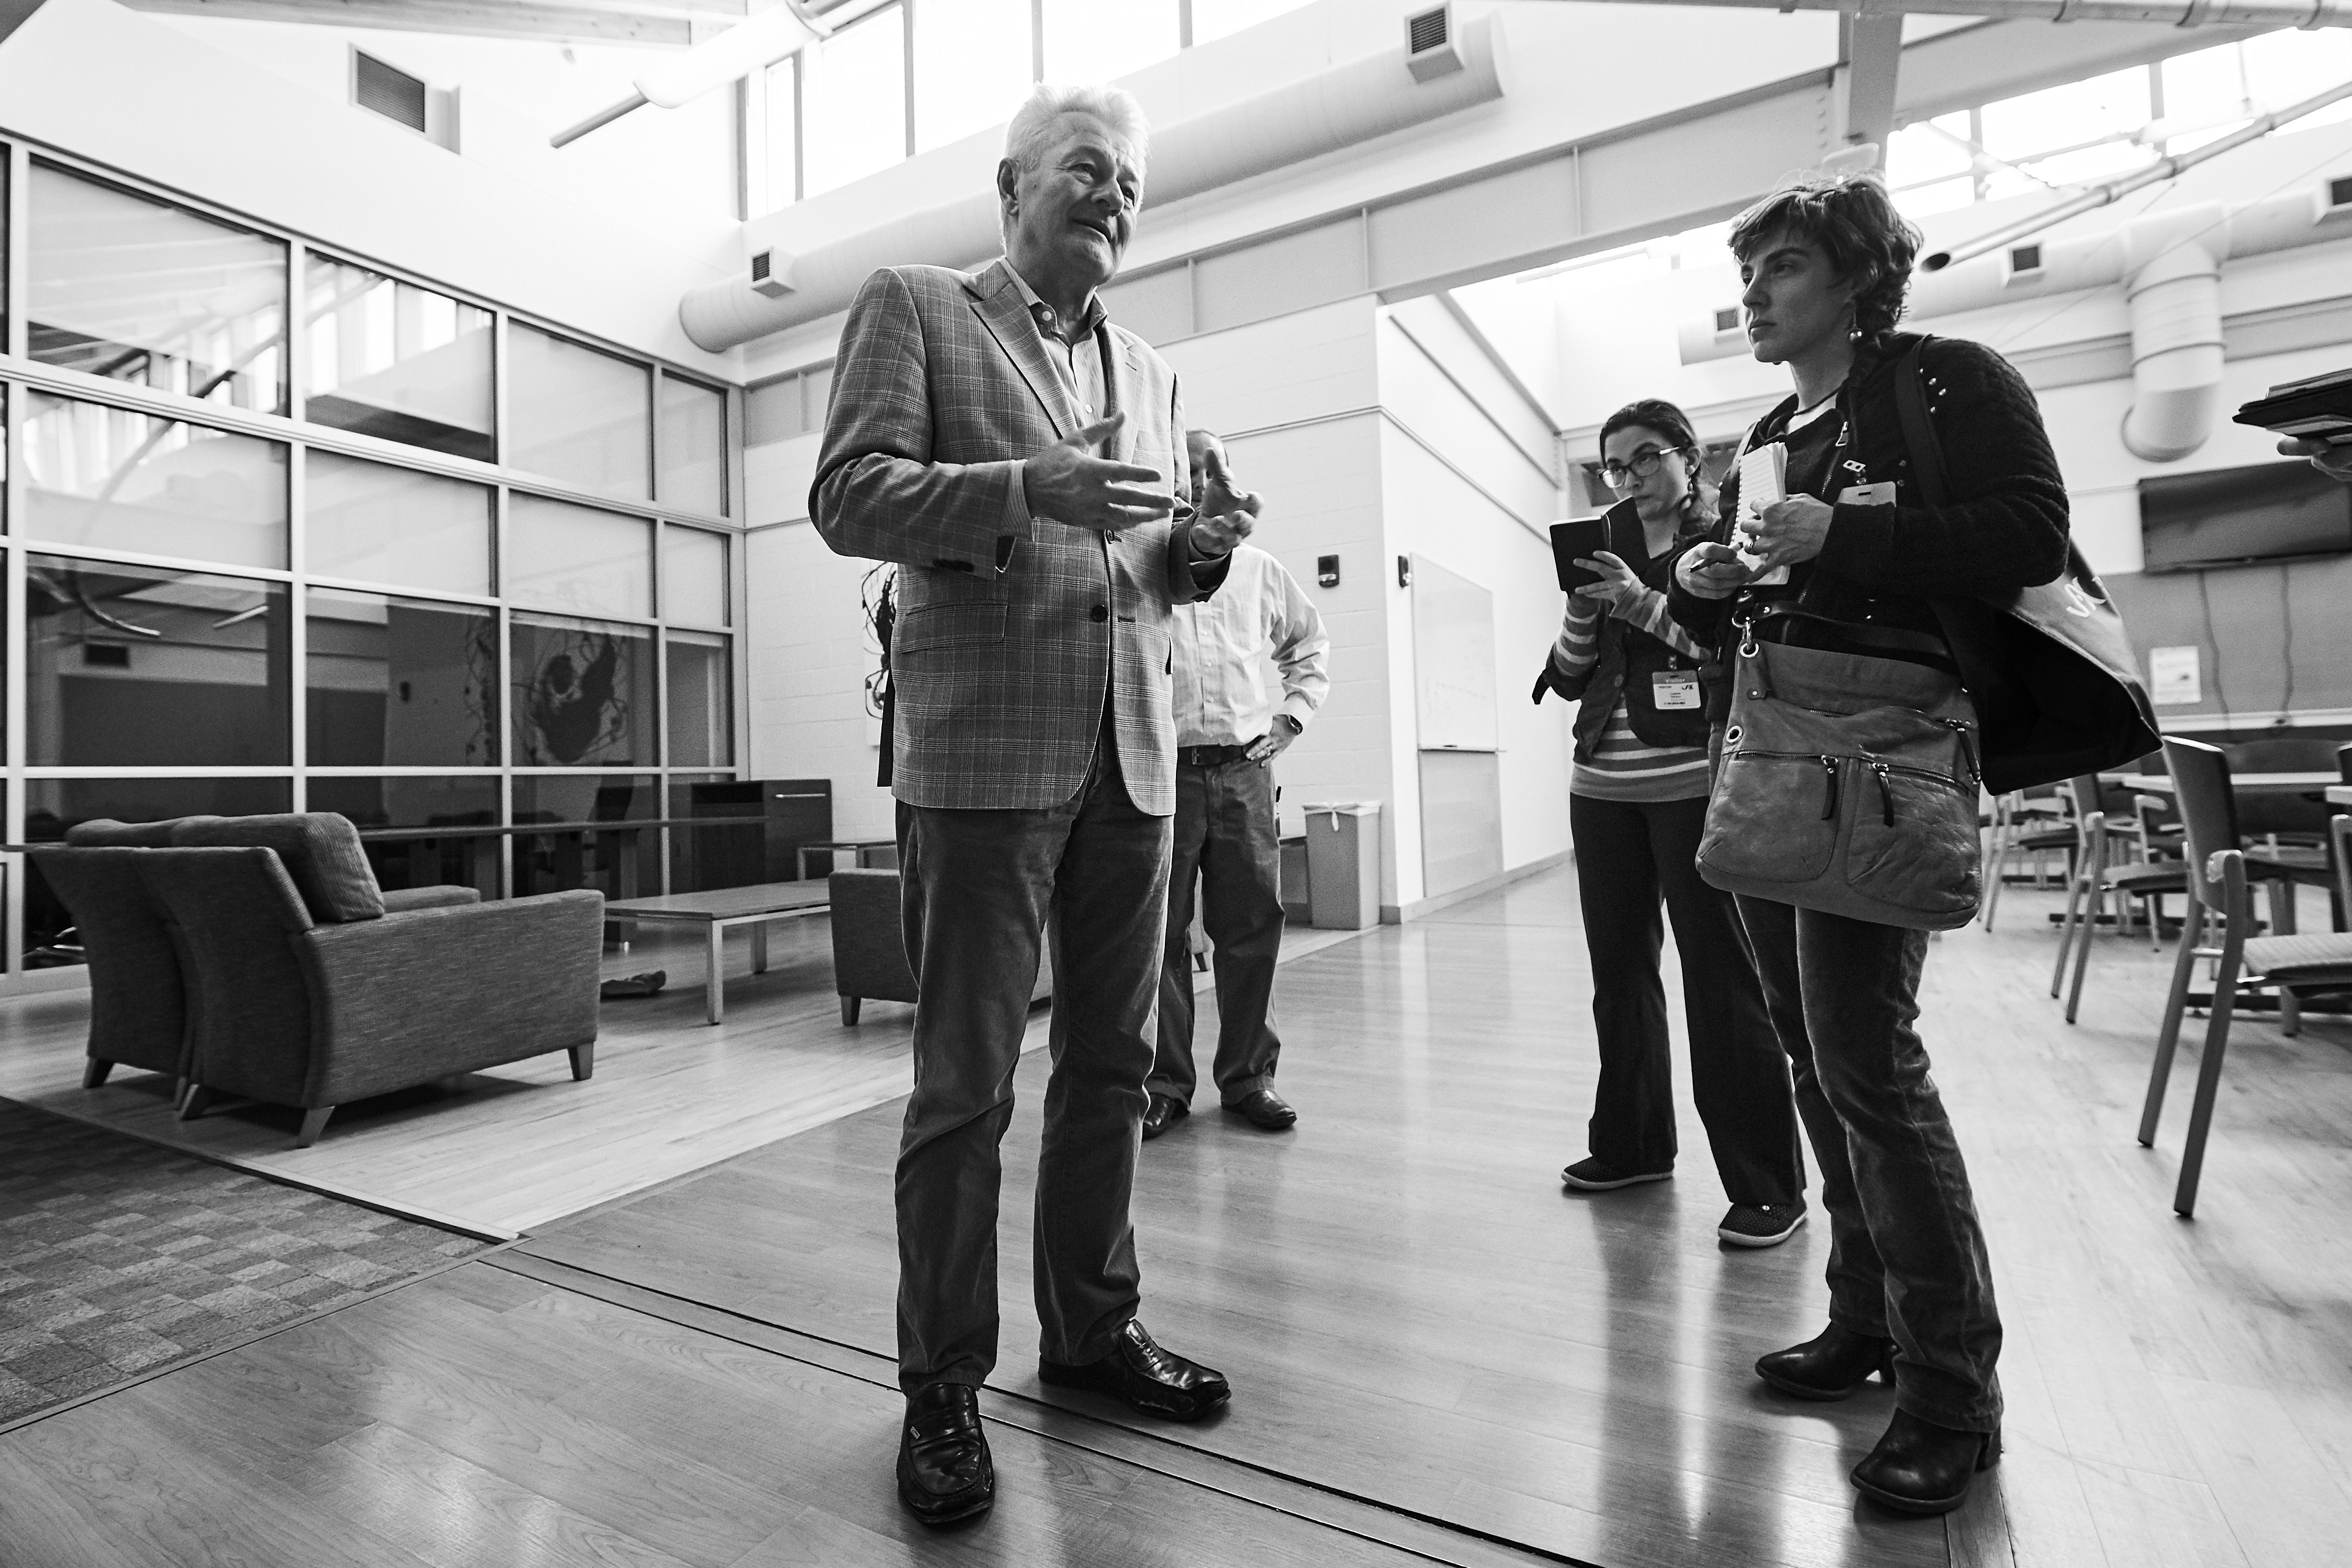 Reinhard Laubenbacher, professor of cell biology, speaks with journalists at the Cell and Genome Sciences Building in Farmington on March 15, 2016. (Peter Morenus/UConn Photo)